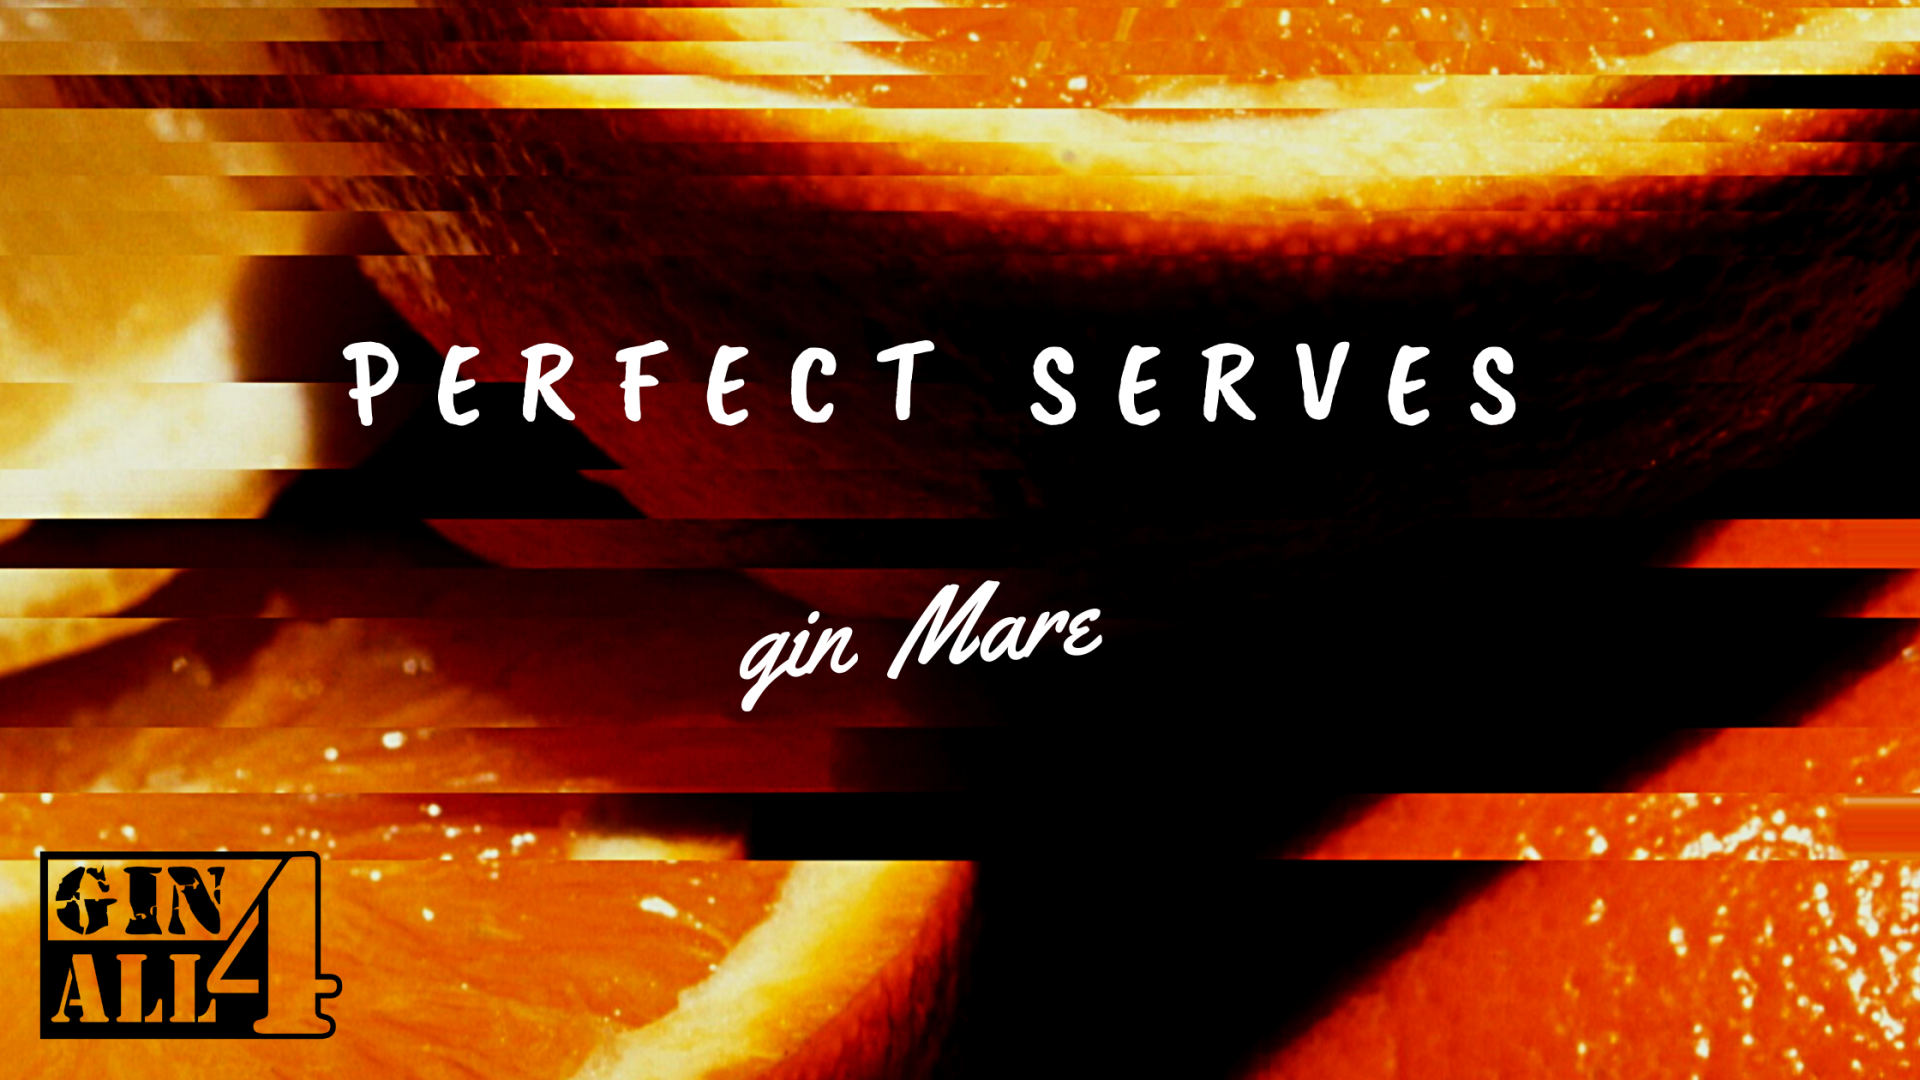 Perfect Serves - GIN MARE